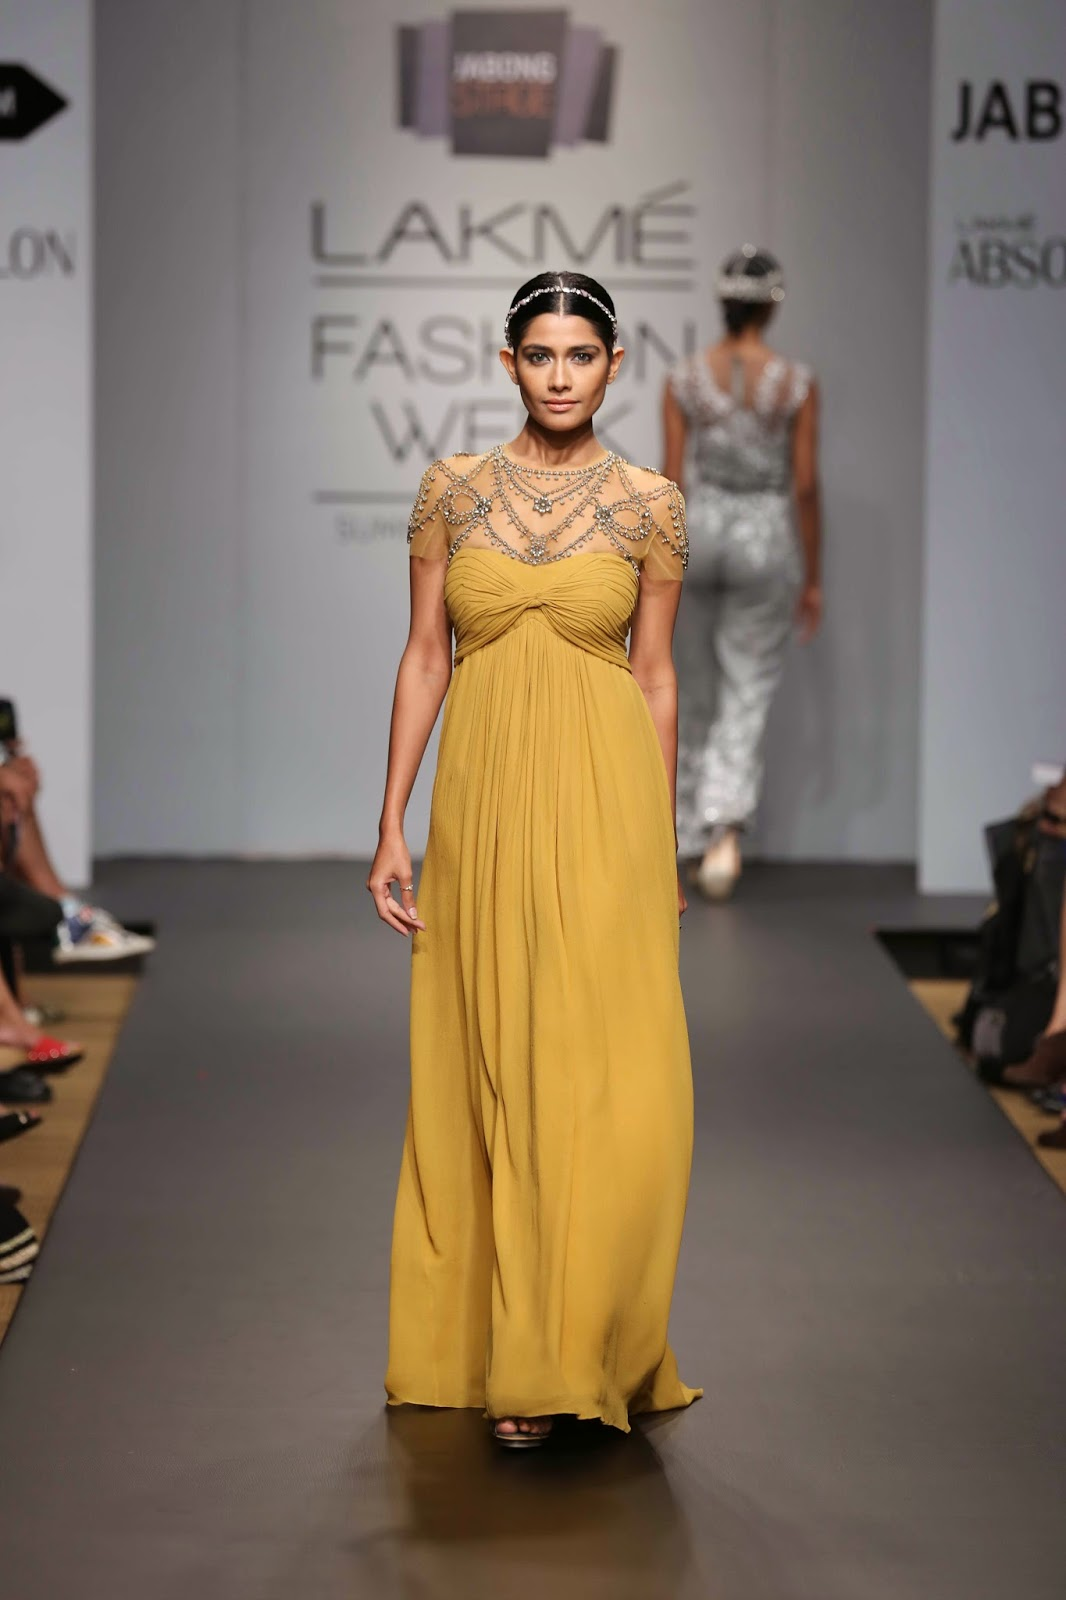 dresses, gowns, kaftans, pantsuits, skirts and pants in rich colours inspired by various Indian spices such as mustard, paprika, rye and bay leaves.